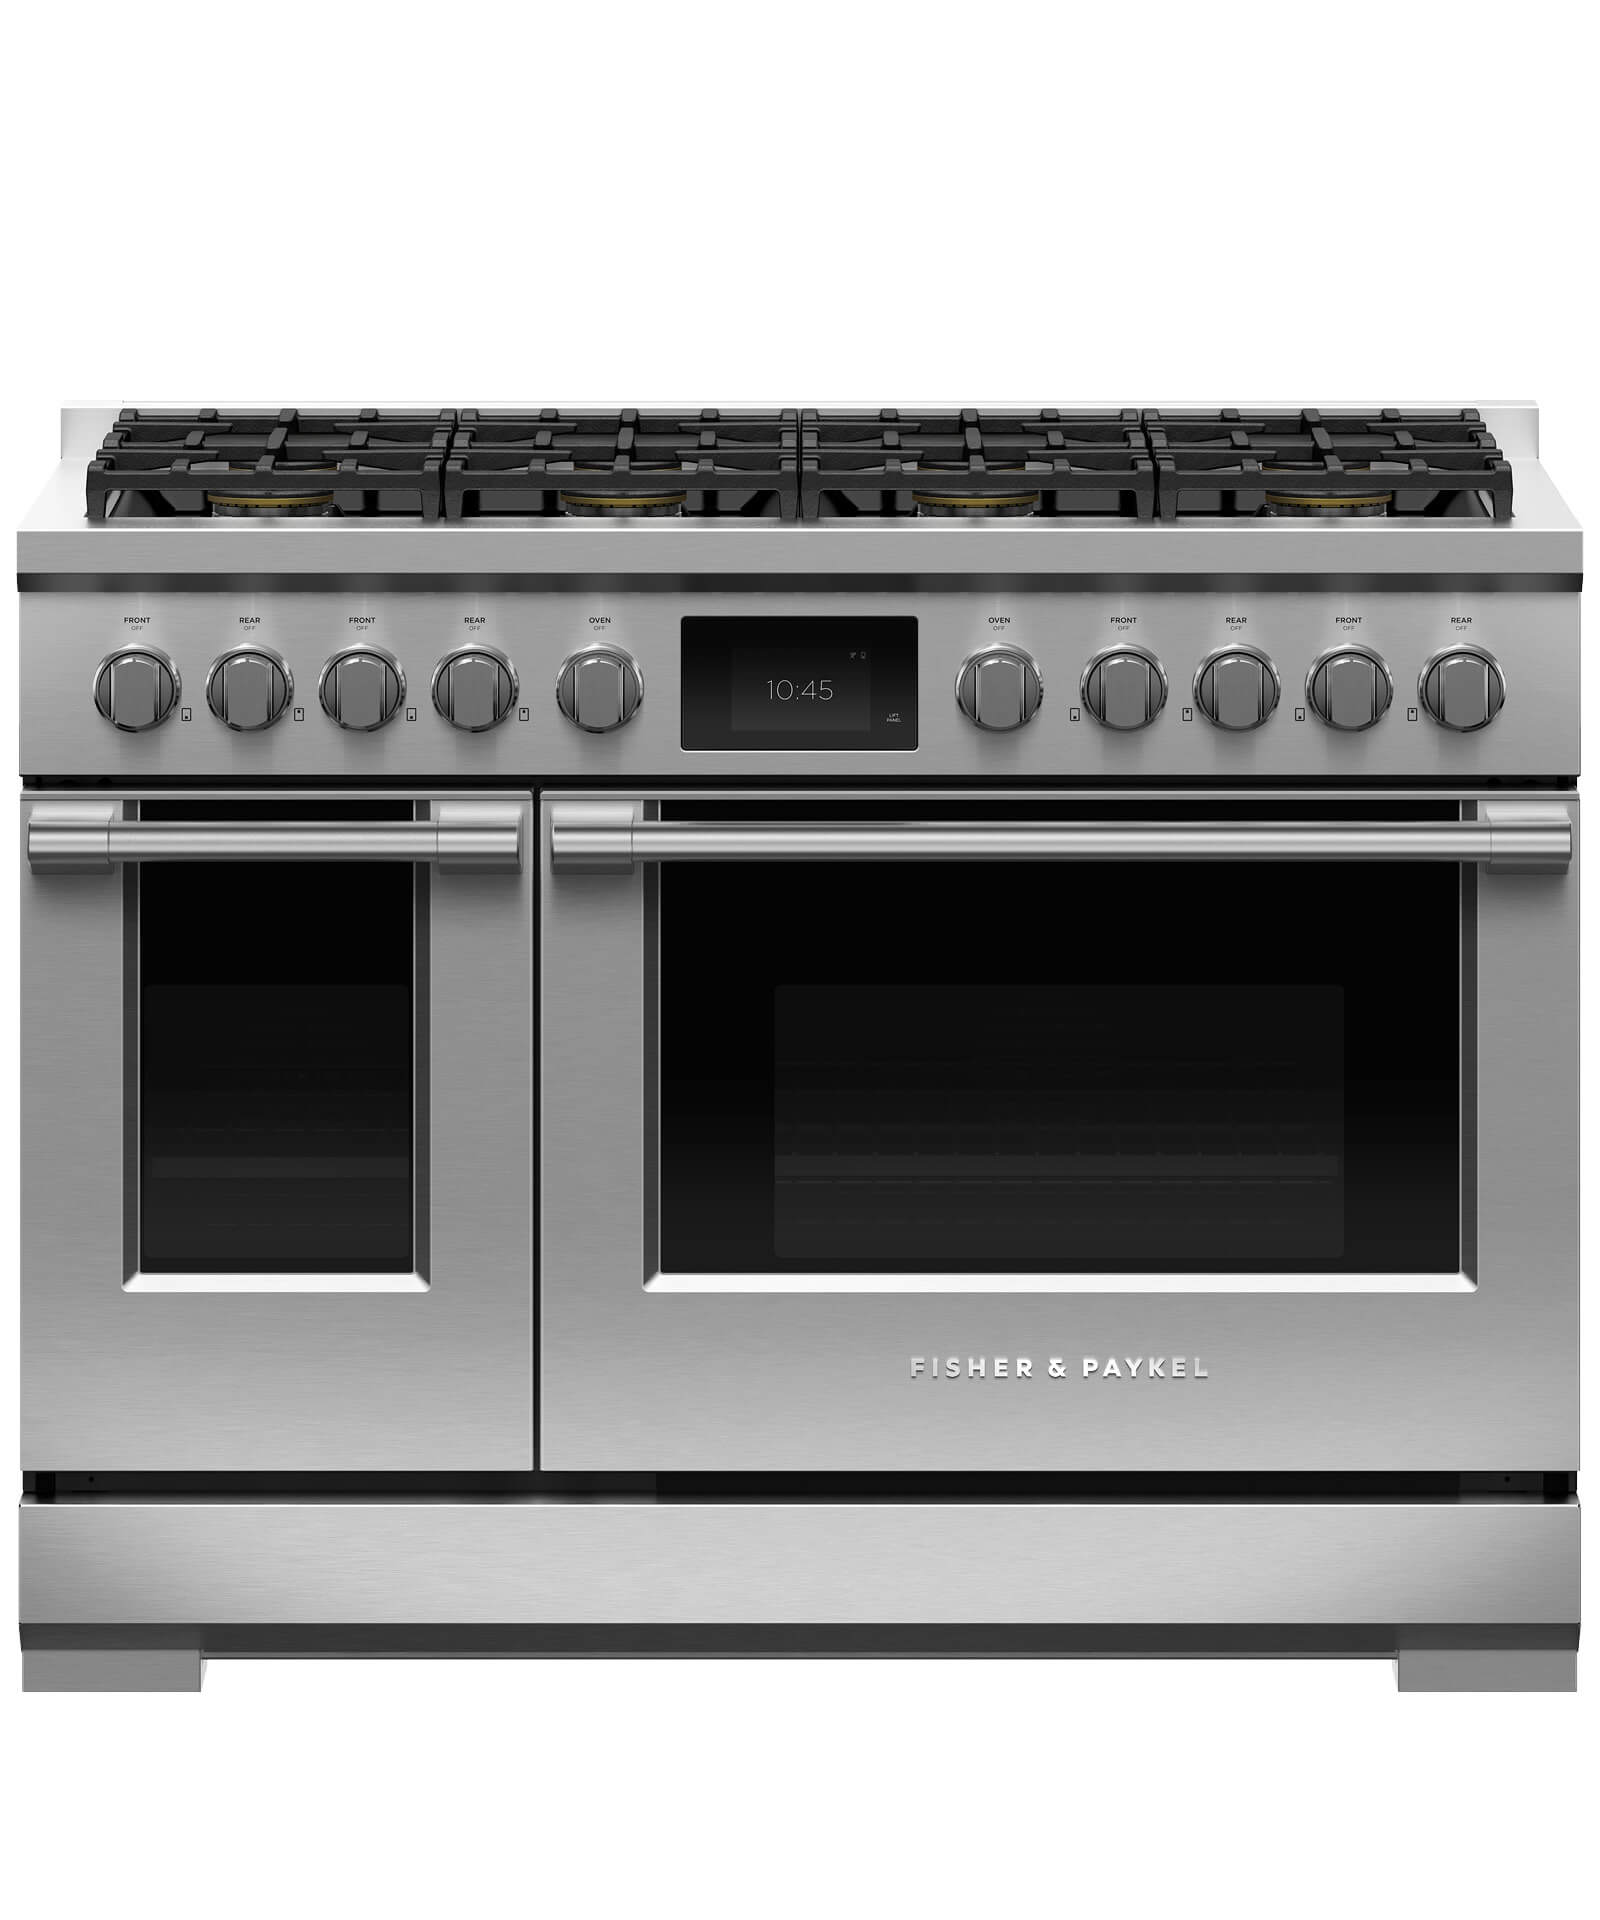 "Fisher and Paykel Dual Fuel Range, 48"", 8 Burners"